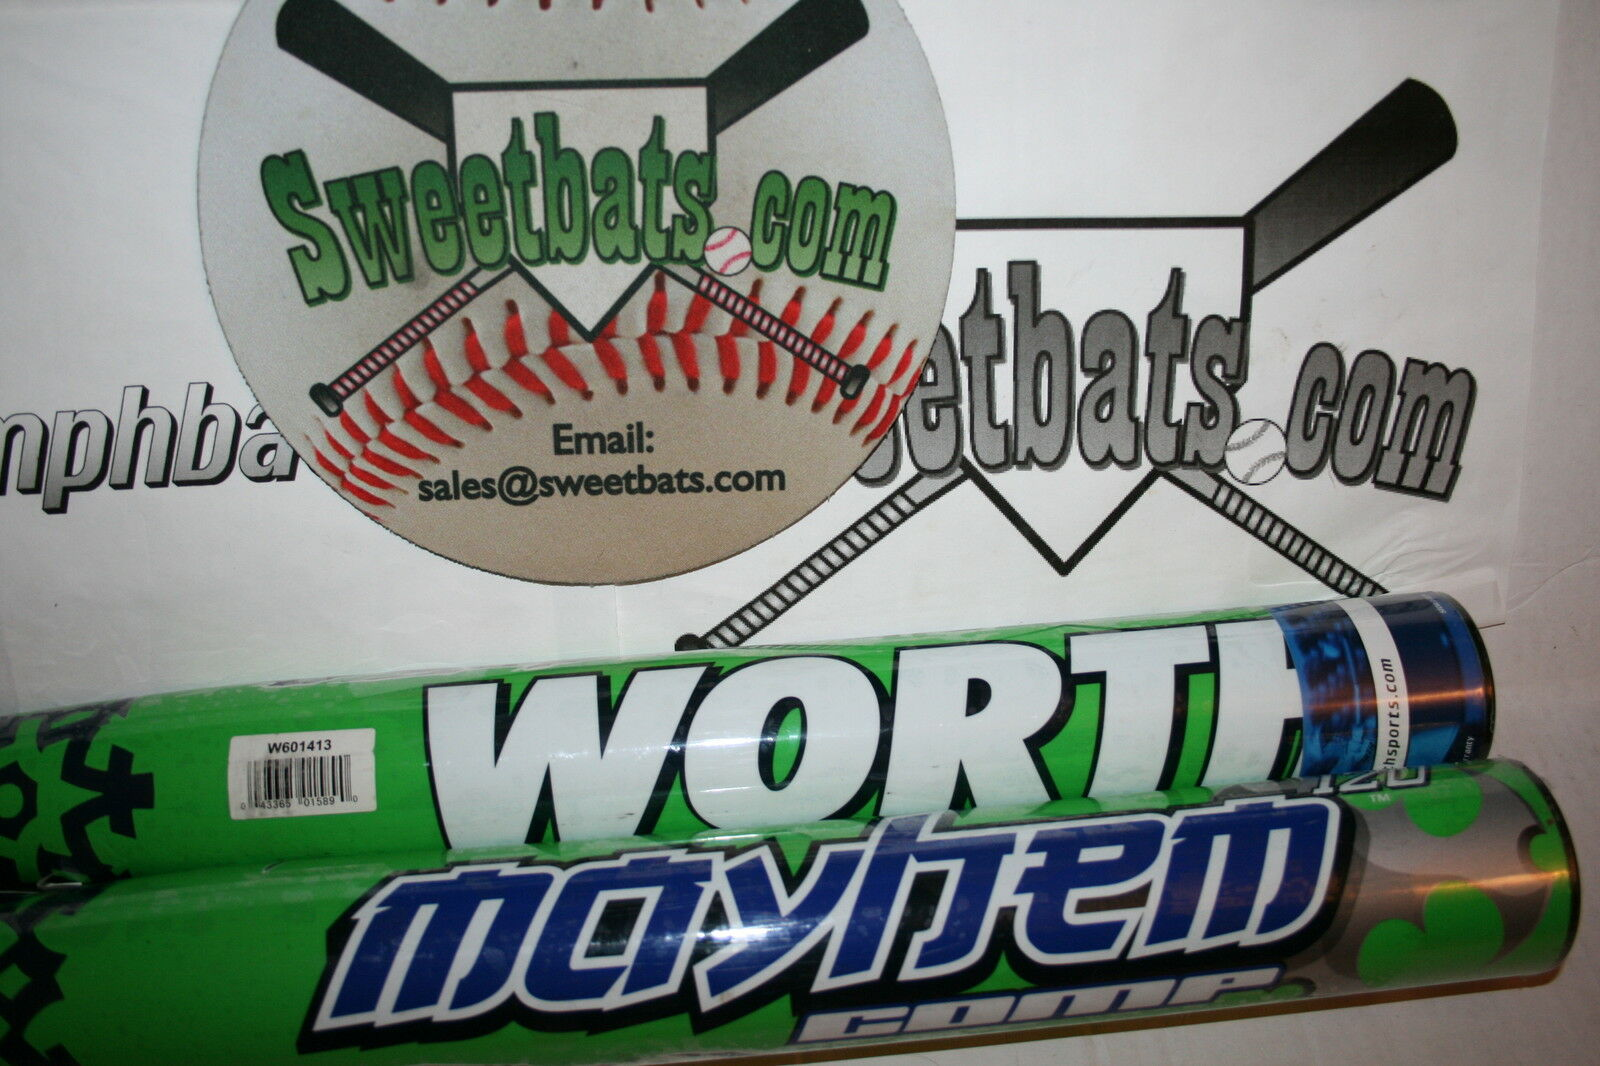 Worth Mayhem Booger M75 SBM75U 120 34 28 Softball 100 Bat New Composite 100 Softball mph HOT 3214e0